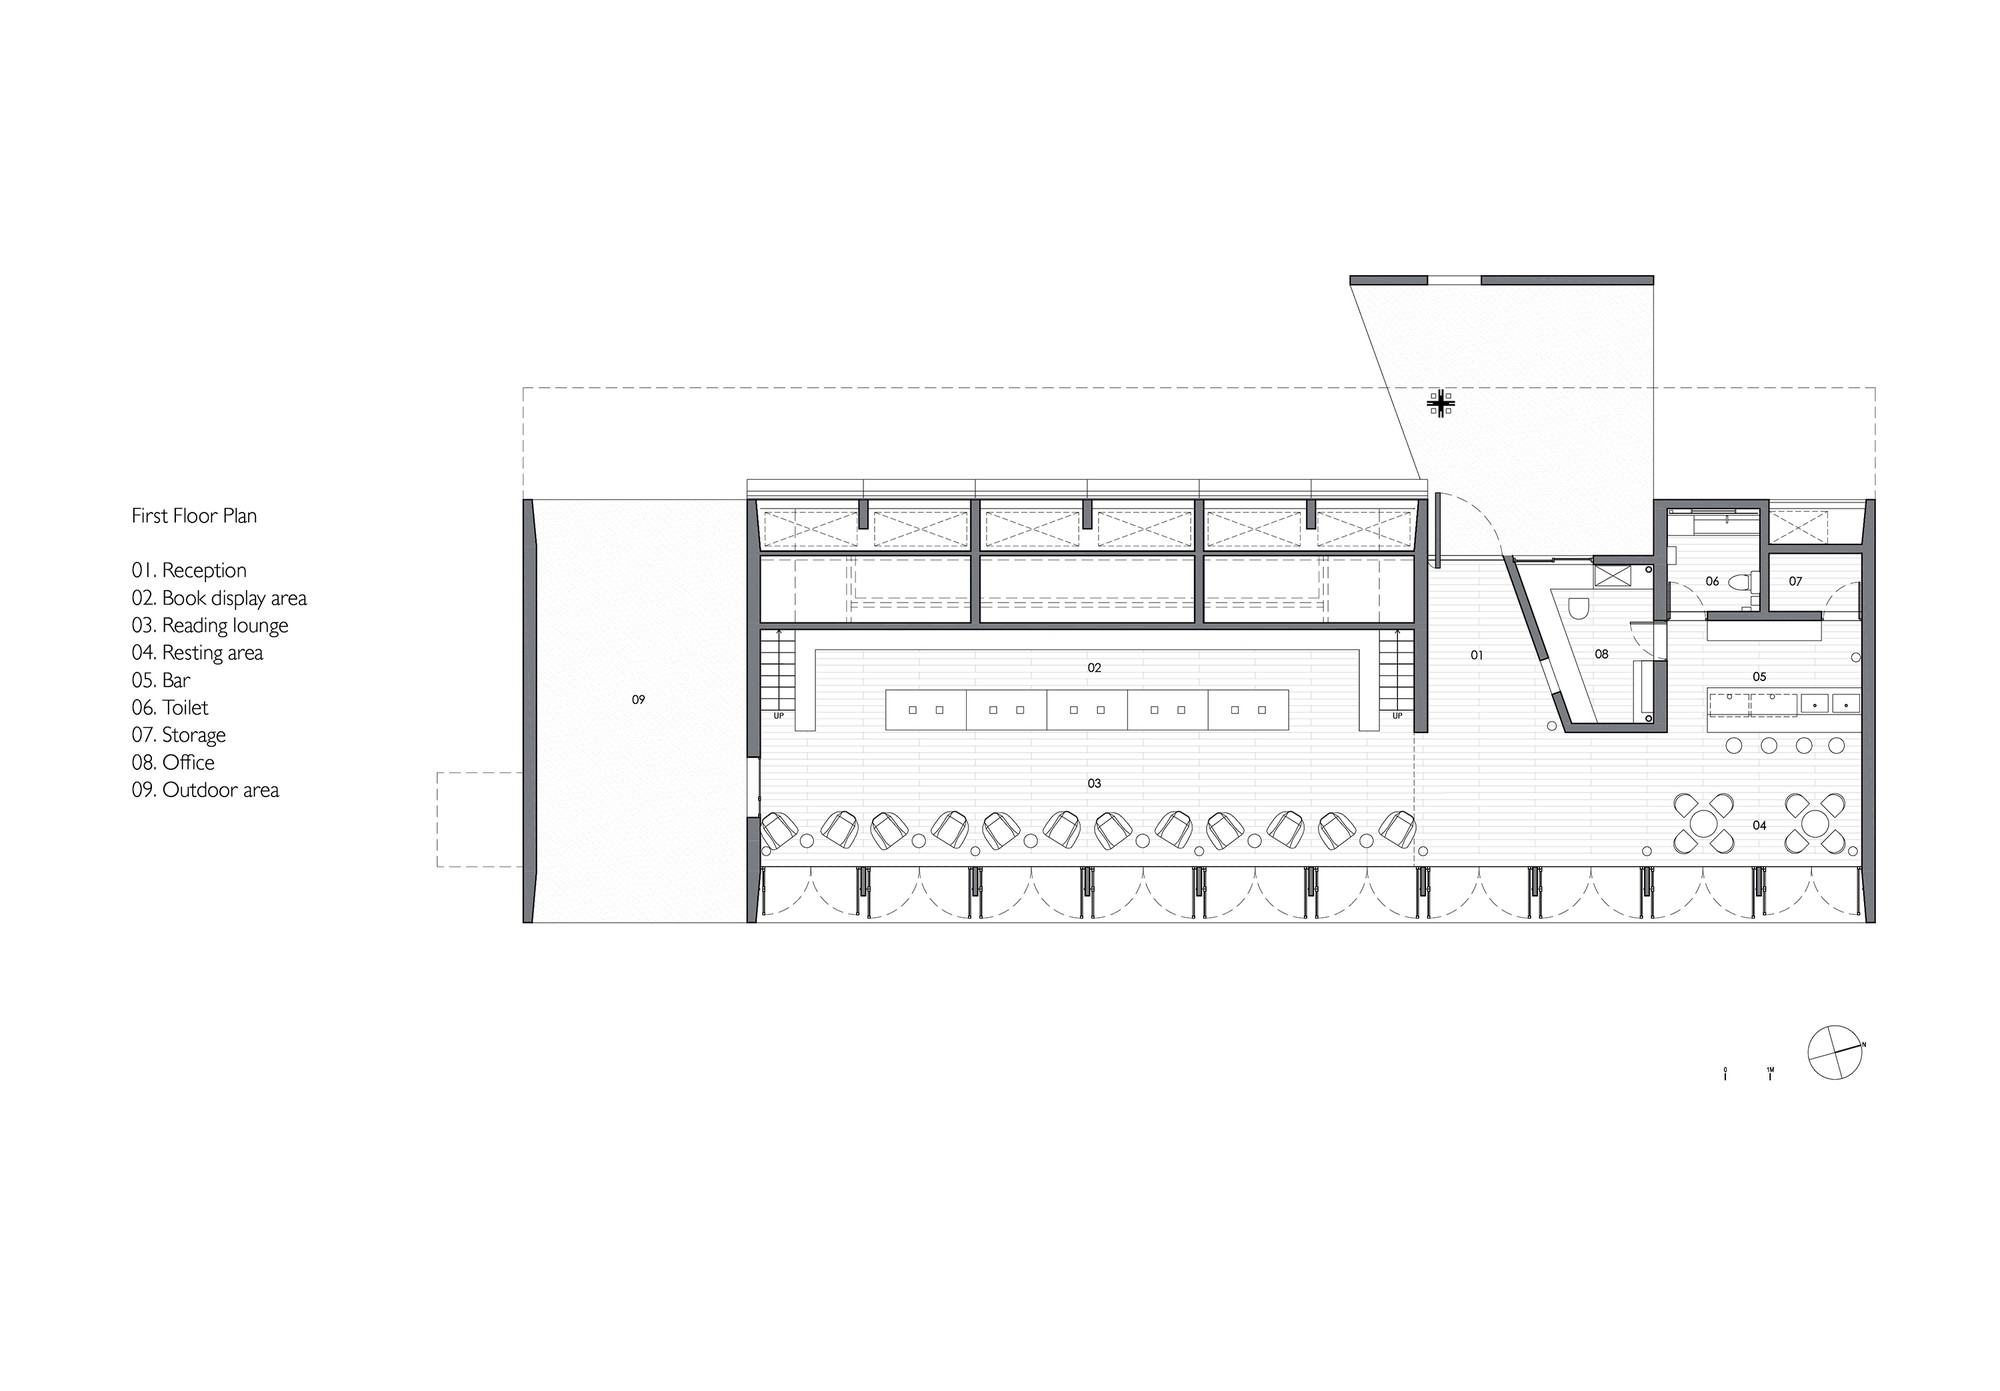 2000x1391 Gallery Of Seashore Library Vector Architects